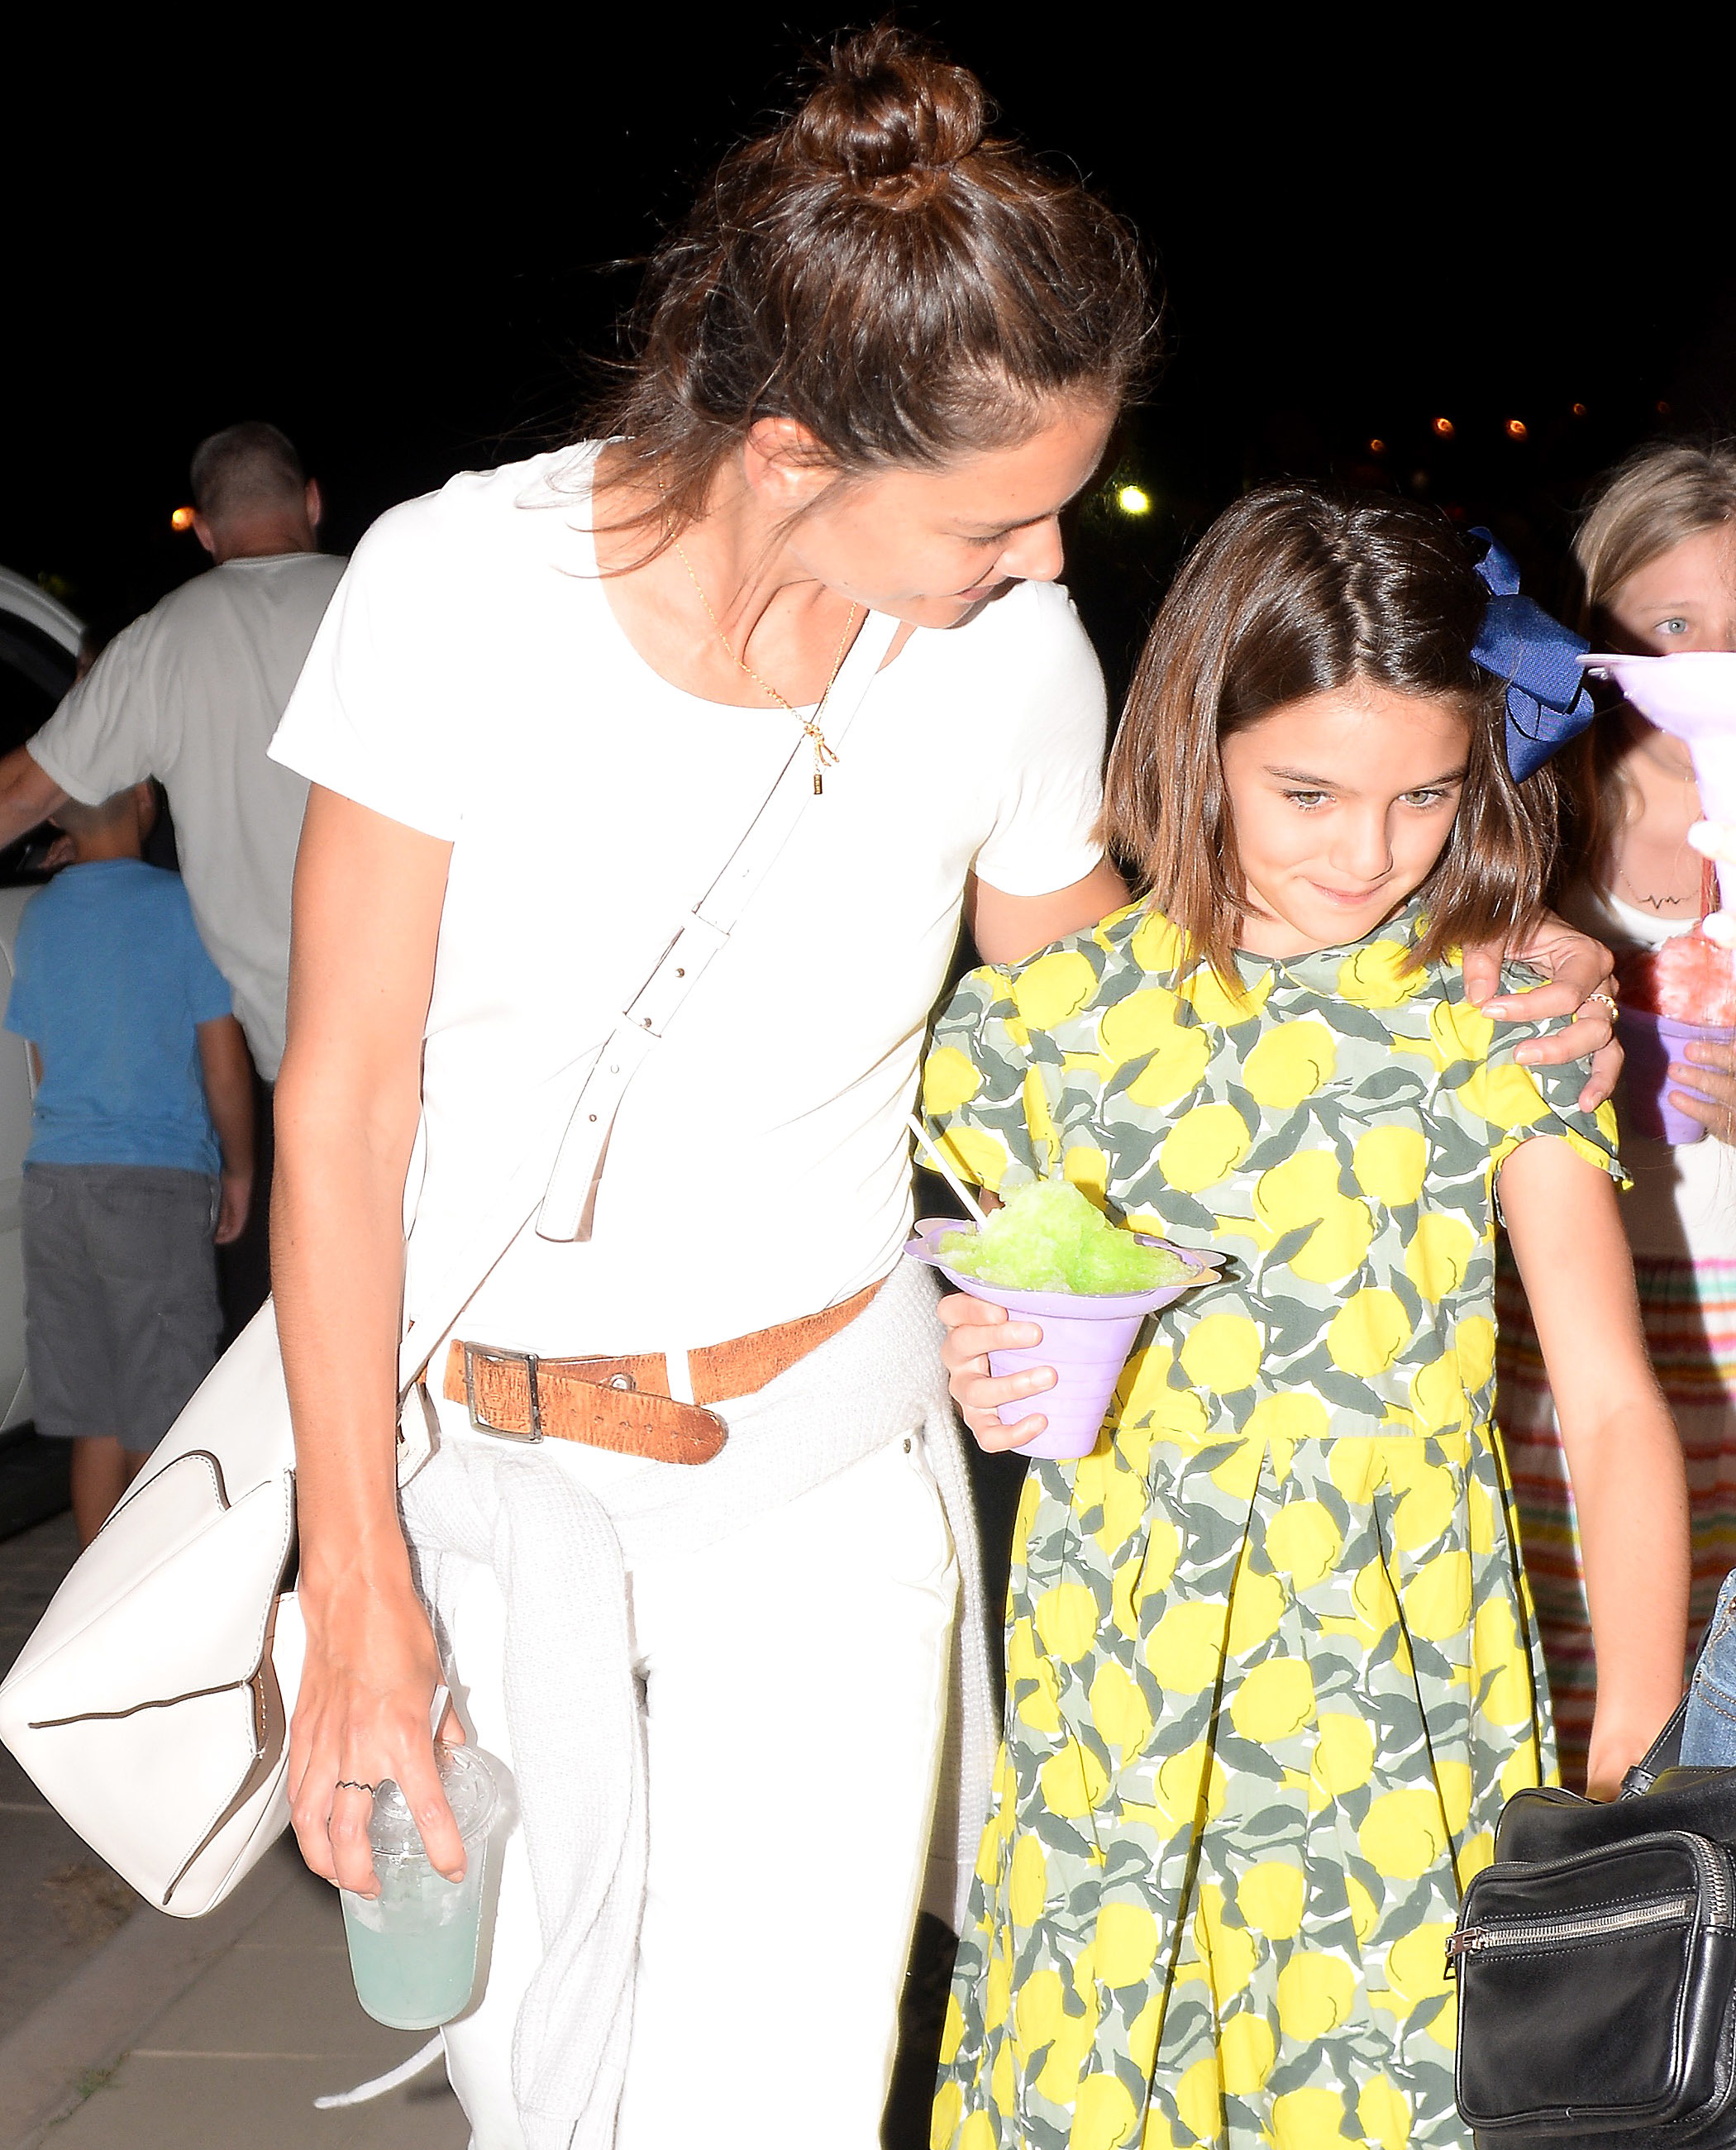 Katie Holmes and Suri Cruise walk around the 36th Annual Malibu Chili Cook Off in Los Angeles, Calif., on Sept. 3, 2017.